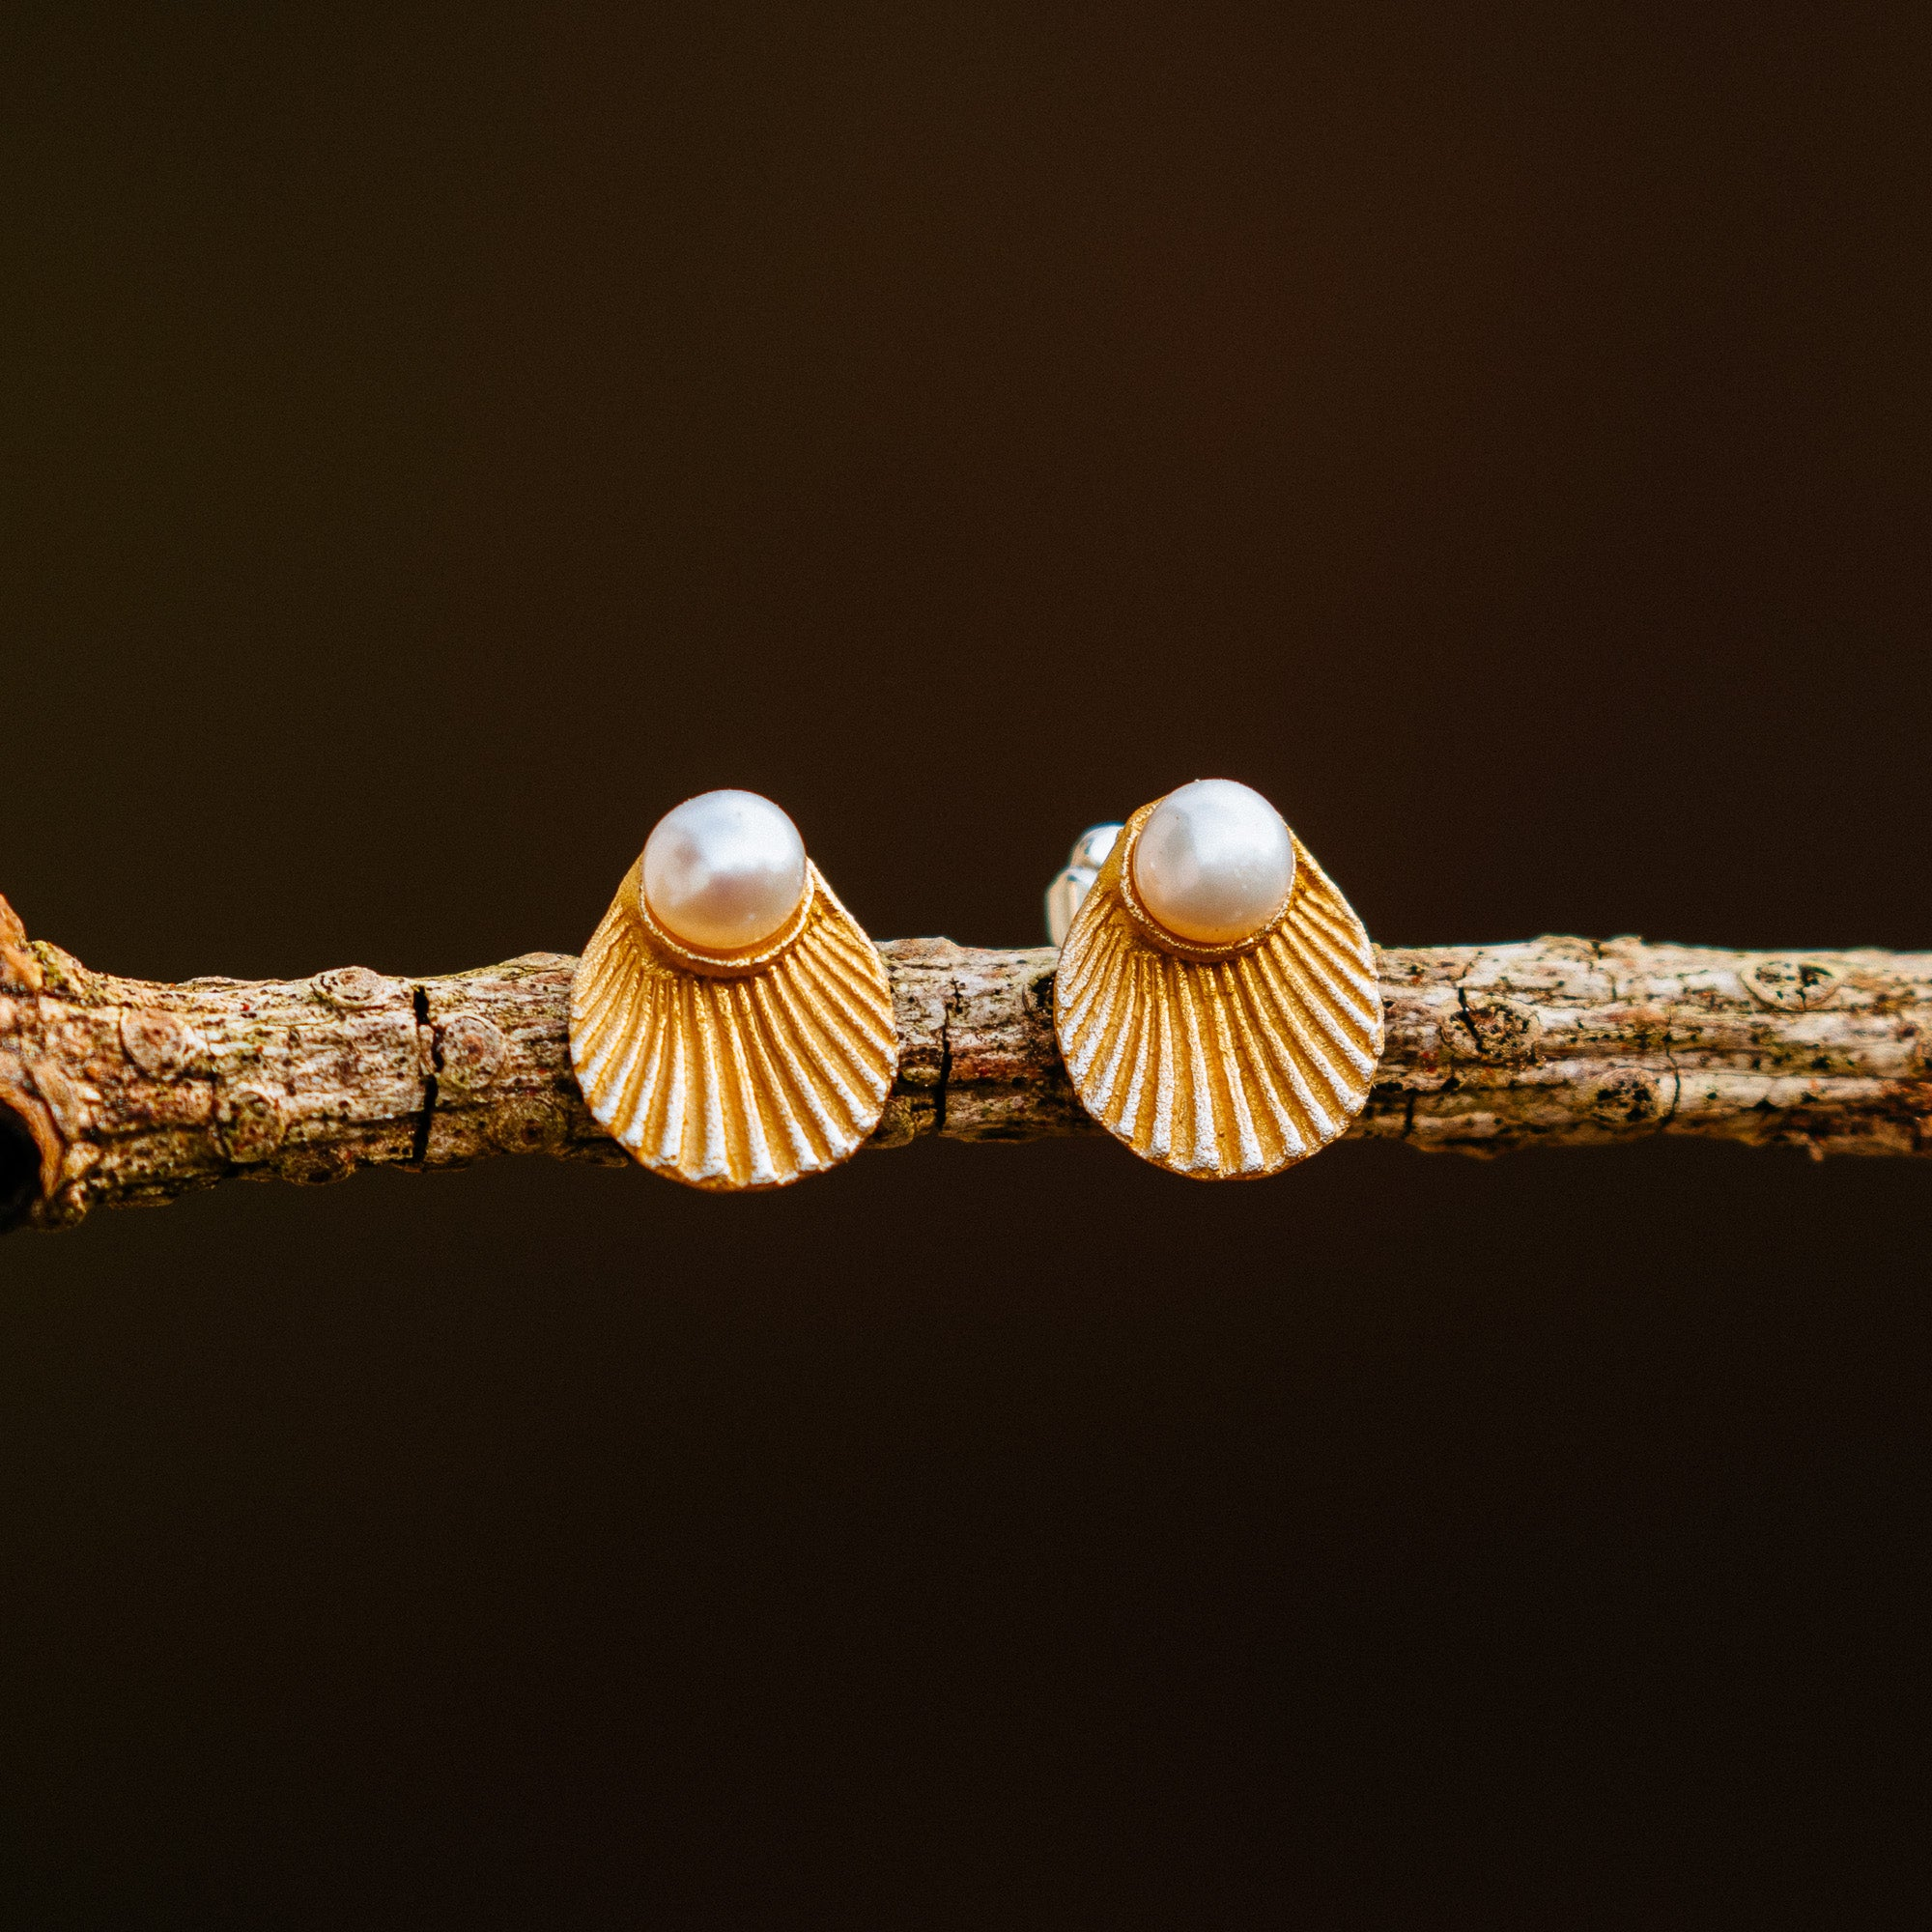 Sea Scallop Earrings